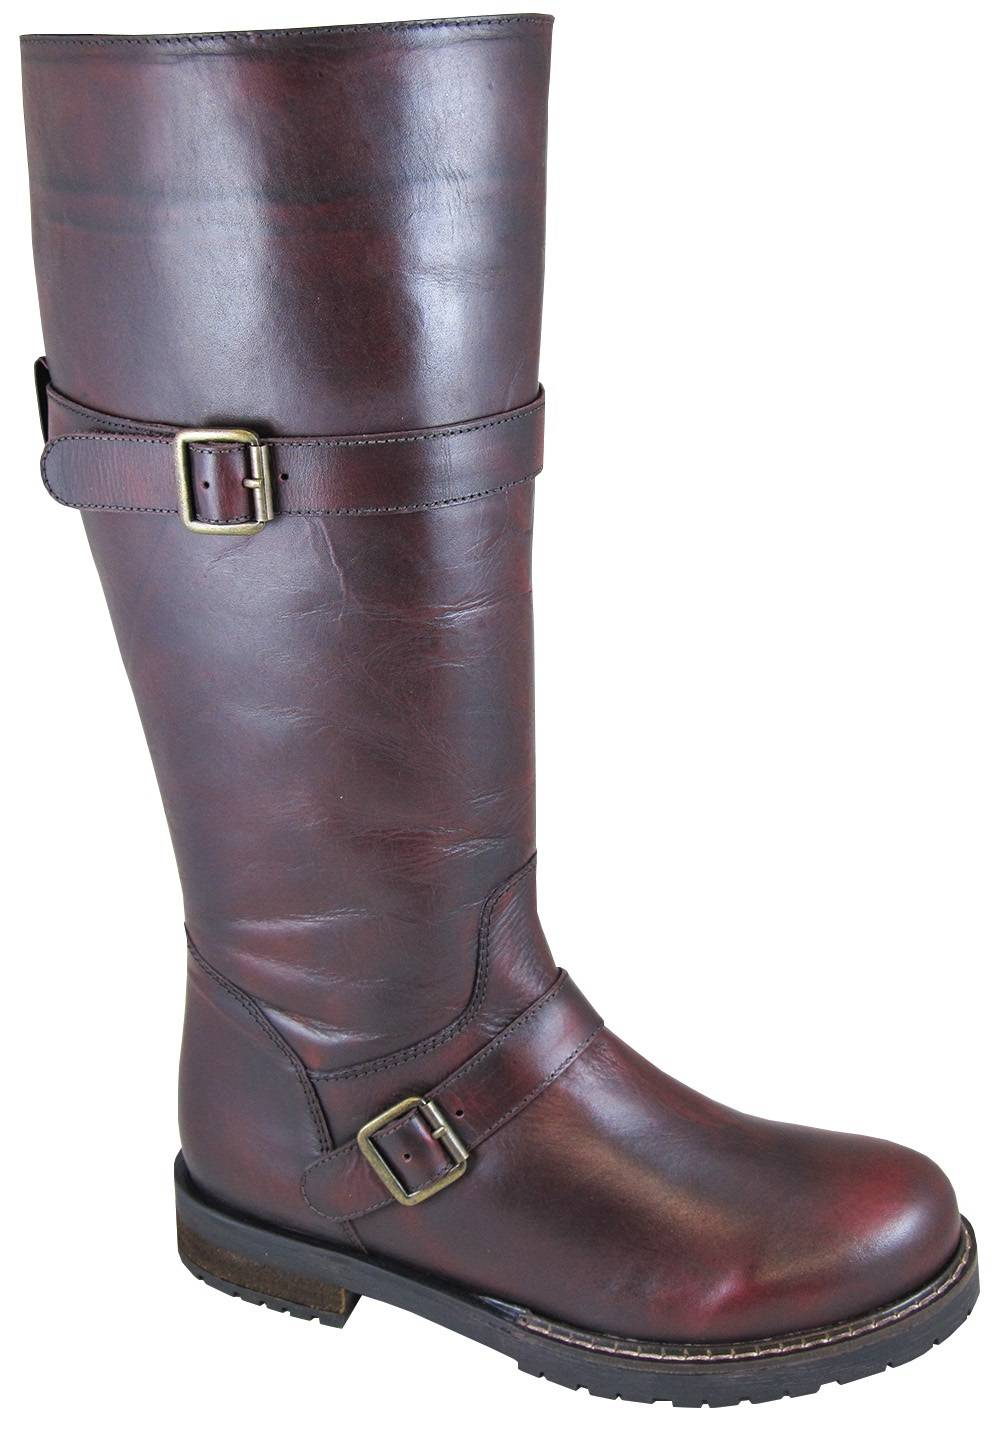 Smoky Mountain Alyssa Boots - Ladies - Brown